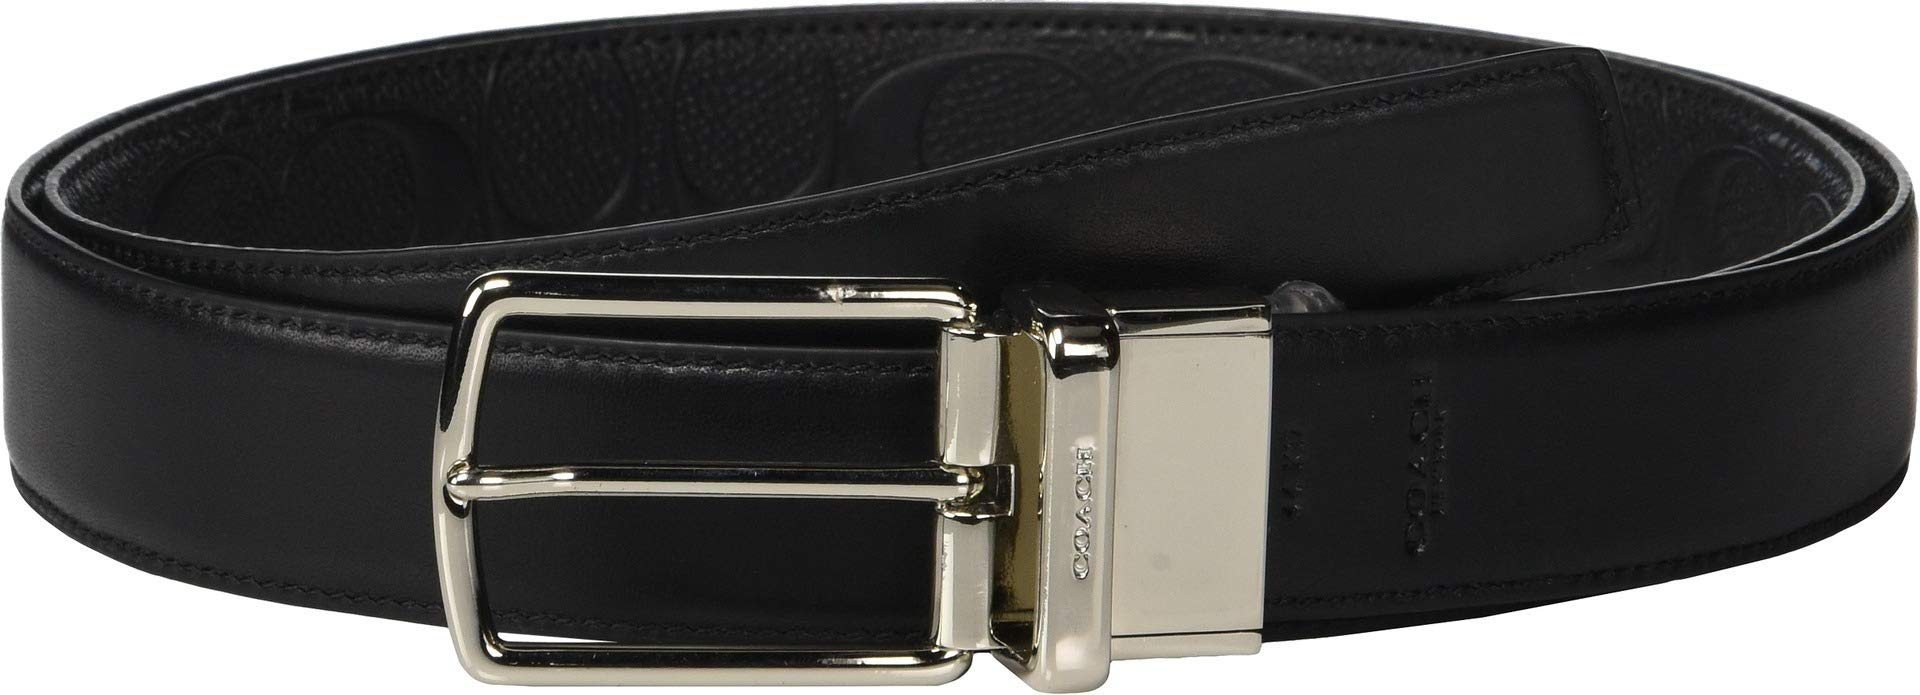 53b270f5c554 buyr.com - Coach Black Brown Leather Cut-to-Size Reversible Belt F64842  (BLACK DARK BROWN)